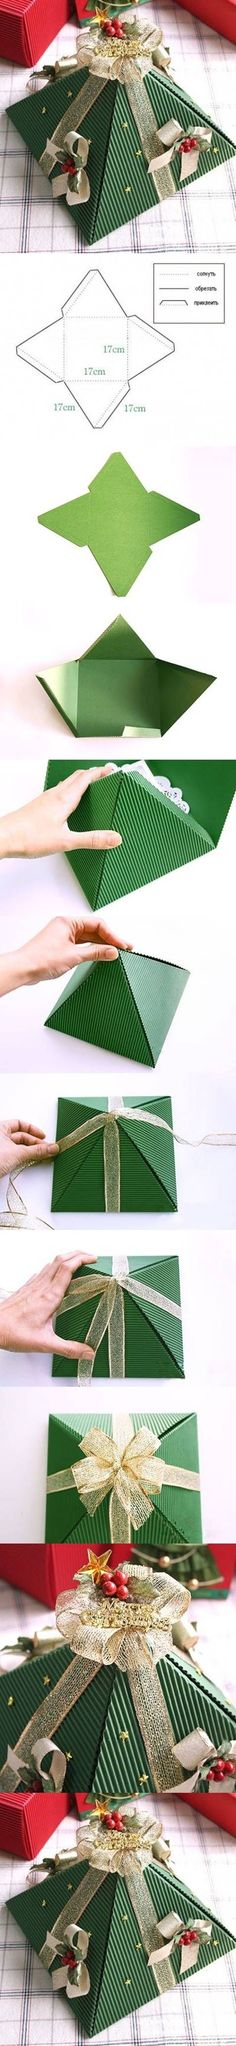 DIY Pyramid Christmas Gift Boxes diy craft crafts christmas how to tutorial craft gifts christmas gifts christmas crafts christmas craft gift ideas Christmas Gift Box, Christmas Gift Wrapping, Christmas Trees, Diy Paper, Paper Crafts, Holiday Crafts, Diy Gifts, Craft Gifts, Christmas Decorations